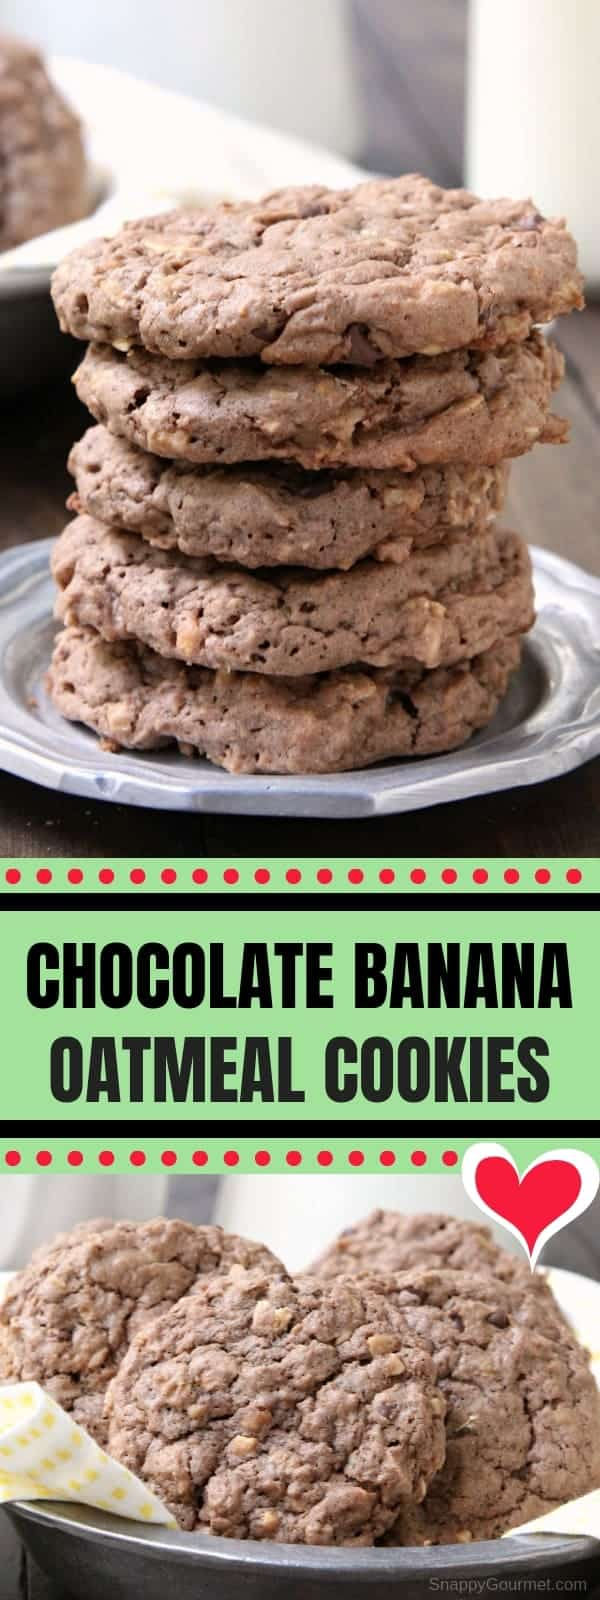 Chocolate Banana Oatmeal Cookies - easy homemade cookie recipe